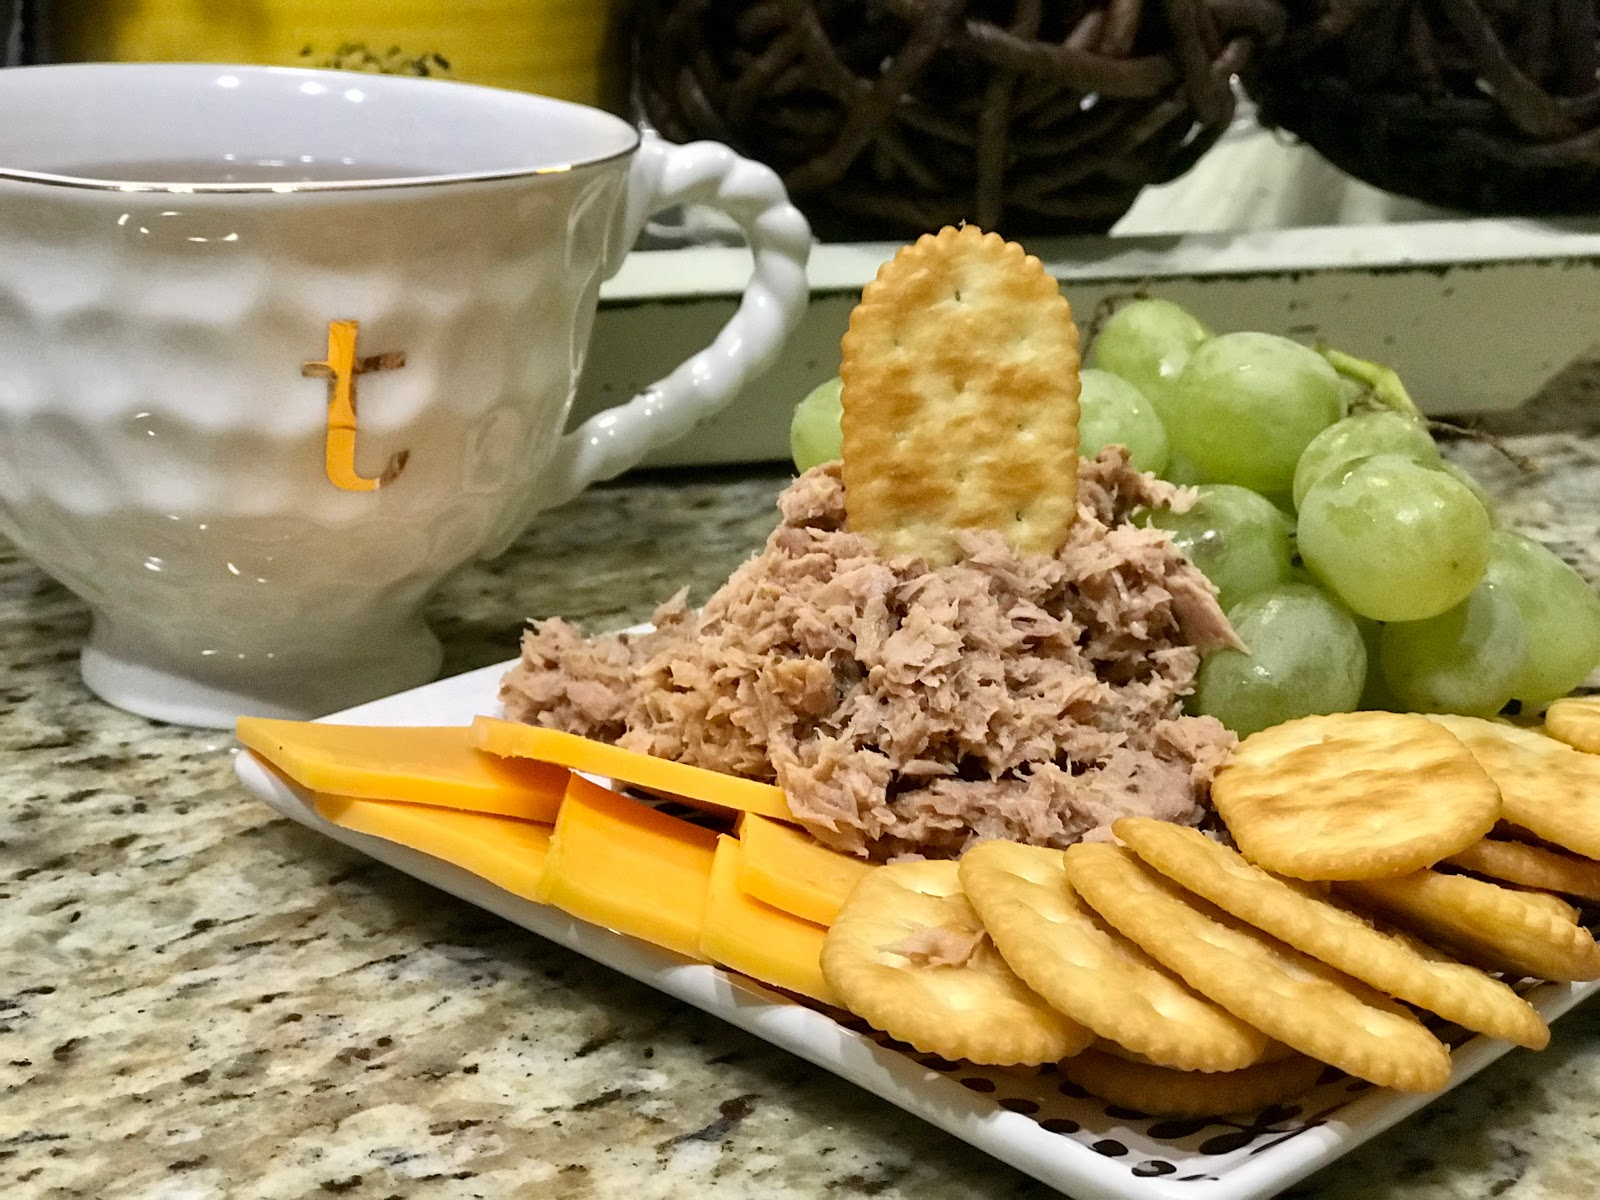 A bit of food on a plate filled with tuna, cheese, crackers and hot tea